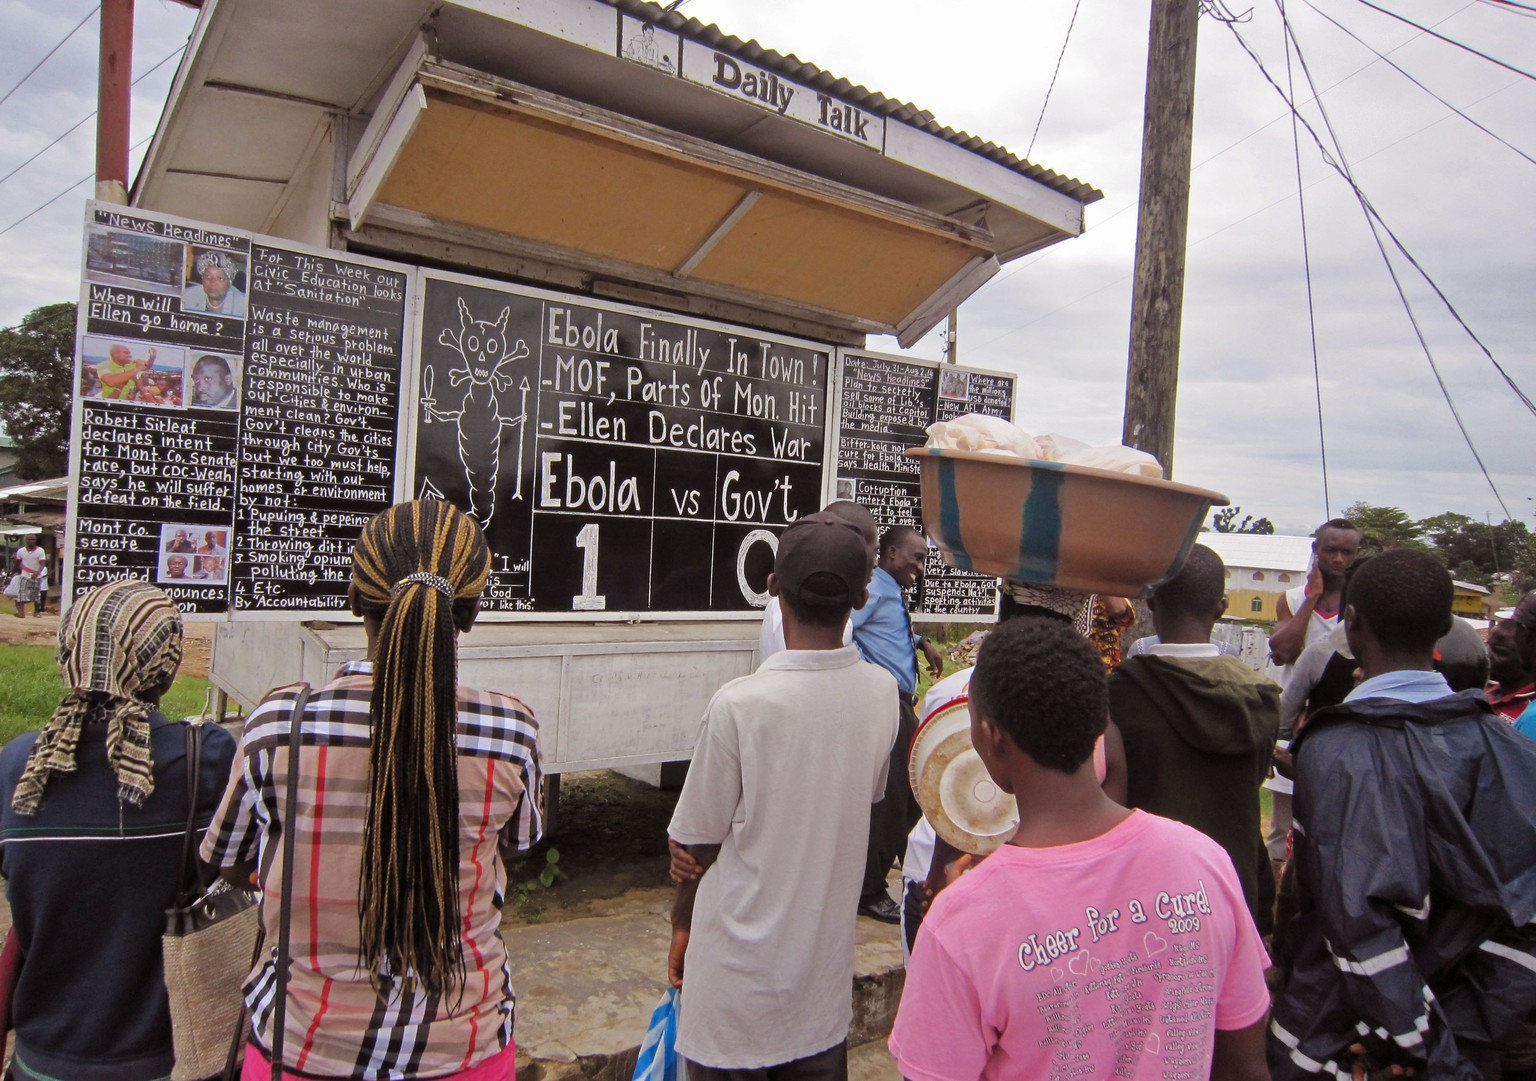 Social Commentator Alfred Sirleaf, center rear,  gives comment on current events in Liberia including the deadly Ebola virus by speaking and writhing them down on a blackboard as people gather around to listen to him in Monrovia, Liberia, Thursday, July 31, 2014. The worst recorded Ebola outbreak in history surpassed 700 deaths in West Africa as the World Health Organization on Thursday announced dozens of new fatalities. (AP Photo/Jonathan Paye-Layleh)